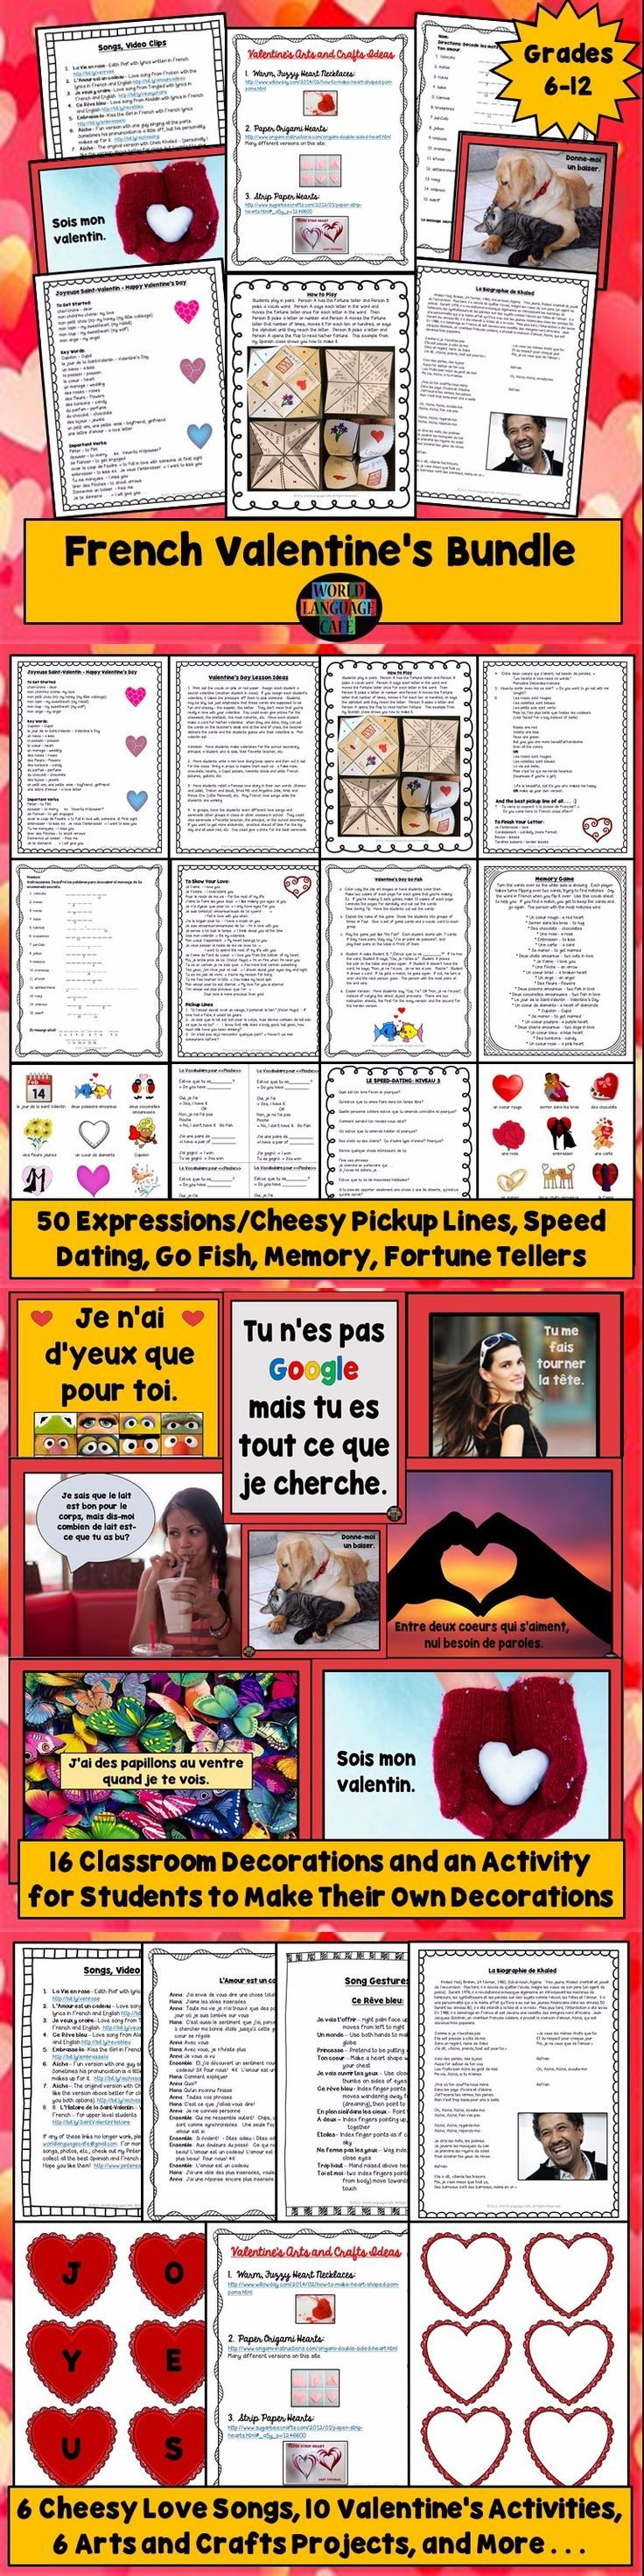 Everything you need so your French students will feel the love on Valentine's Day, jour de la Saint-Valentin: 50 vocab expressions and  pick up lines, 6 cheesy love songs, 8 class activities, games, fortune tellers, class decorations, and arts and crafts.